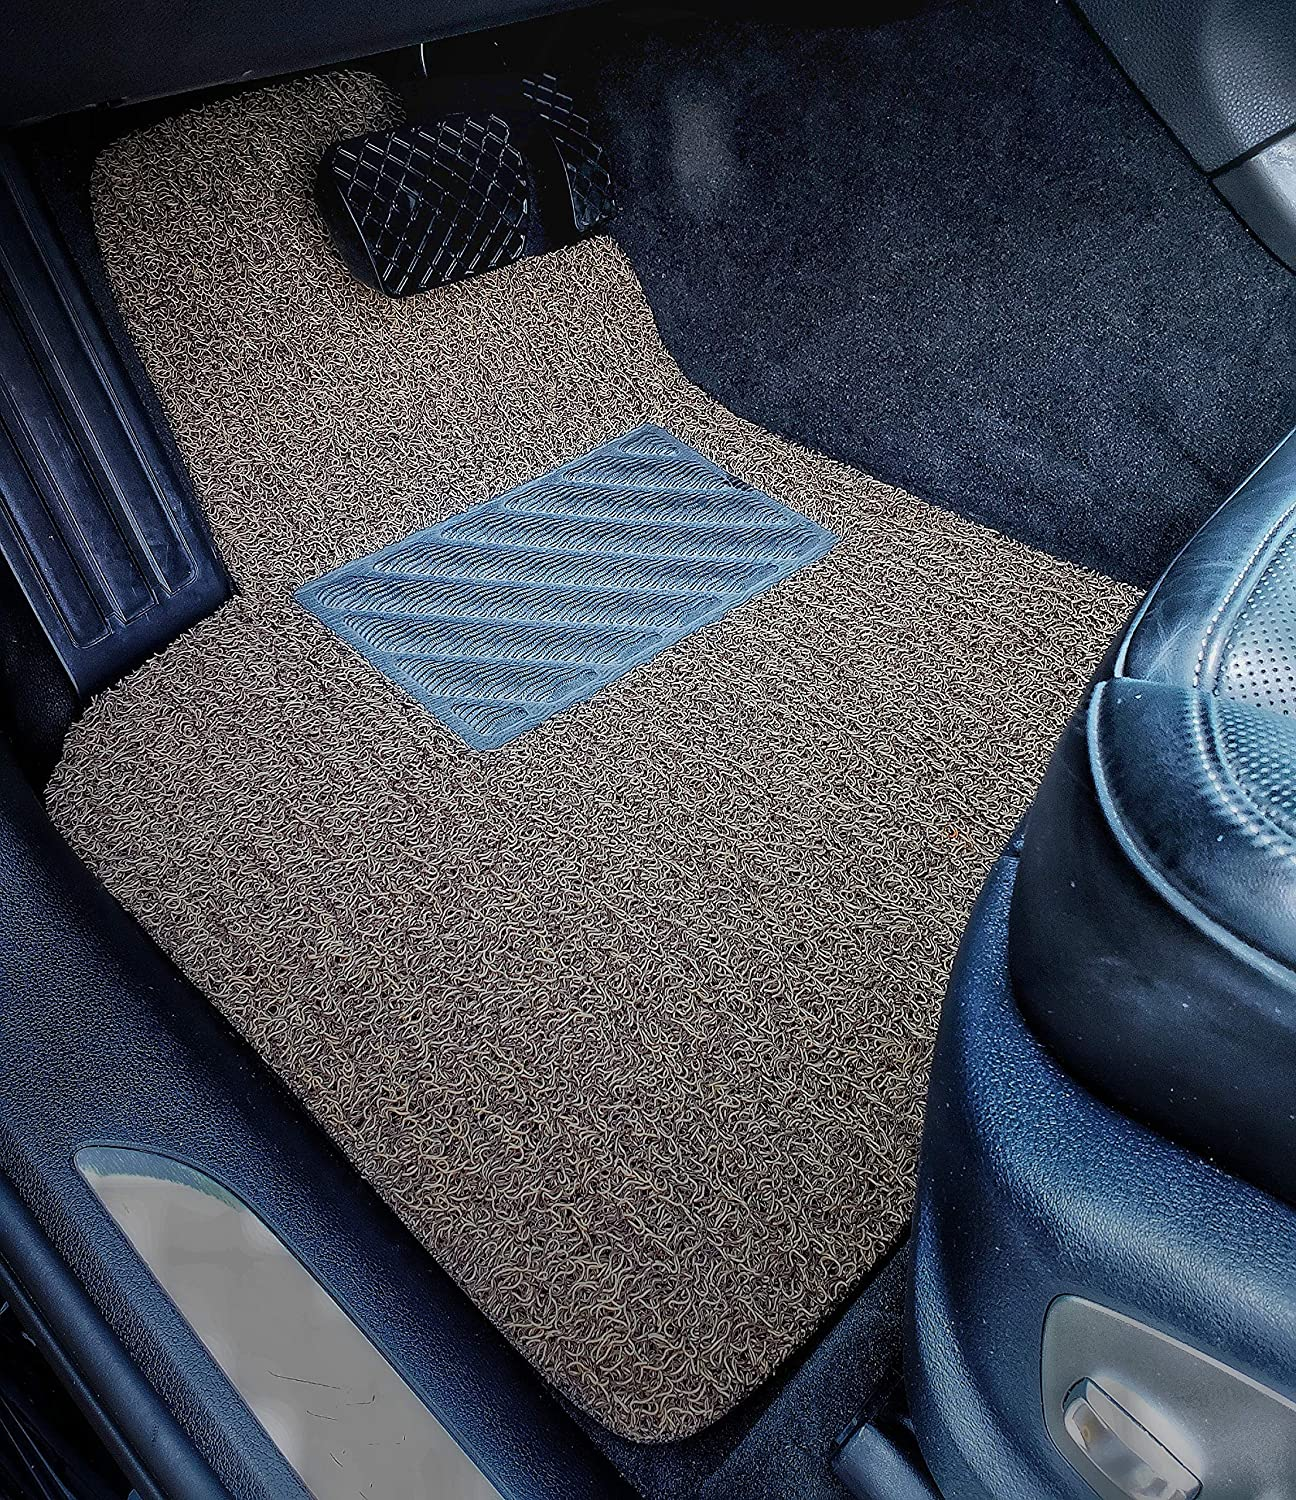 Autotech Zone Custom Fit Heavy Duty Custom Fit Car Floor Mat for 2011-2014 Hyundai Sonata Sedan All Weather Protector 4 Piece Set Beige and Brown